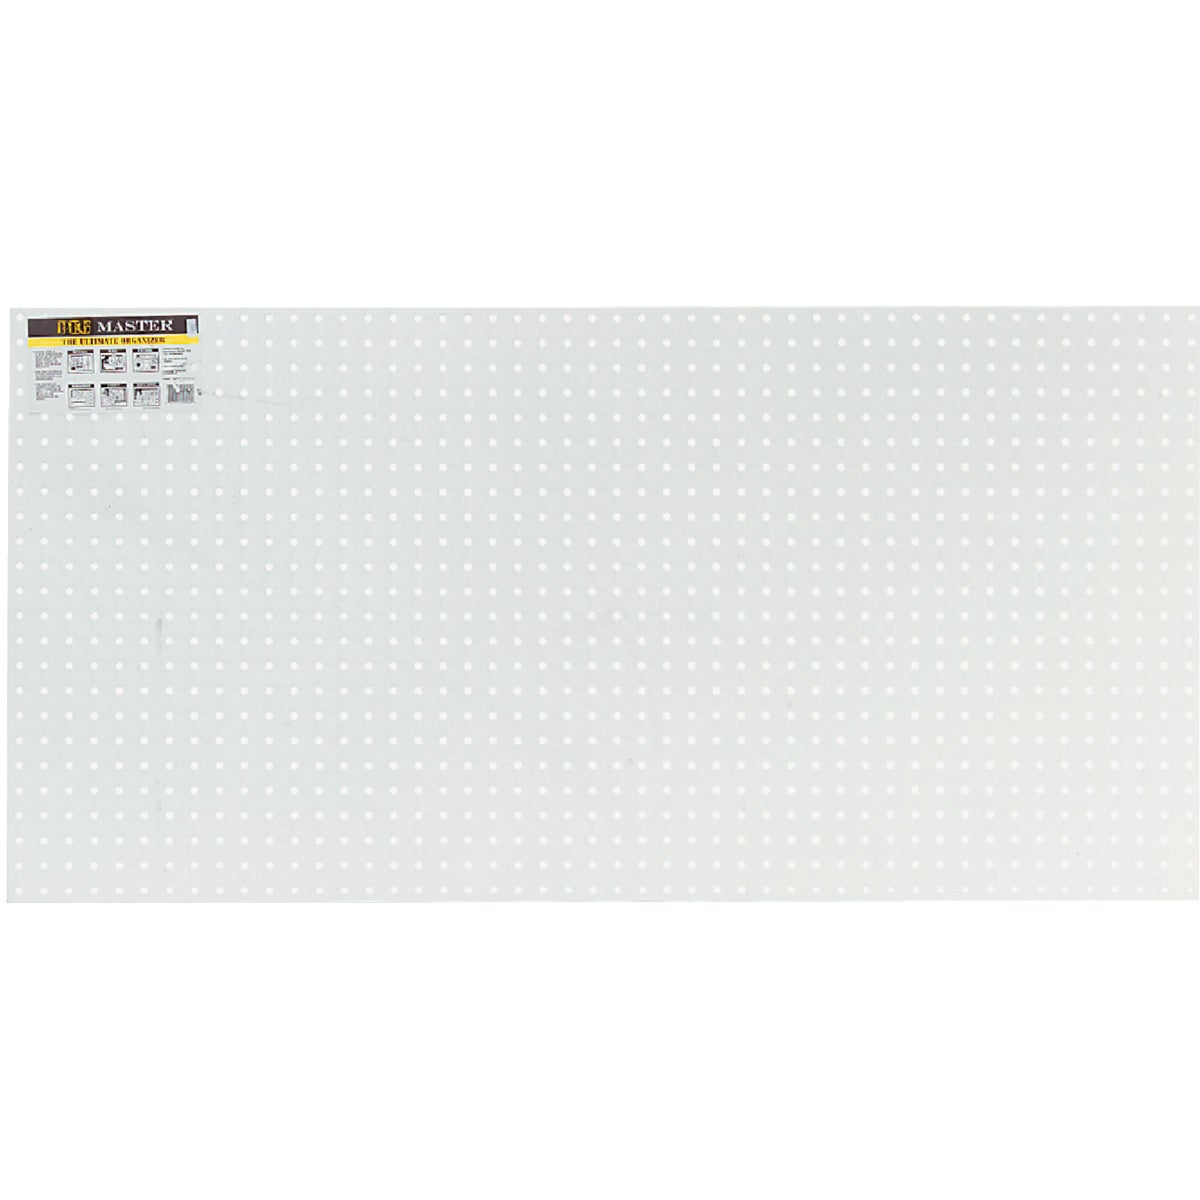 2'X4' Wht Poly Pegboard